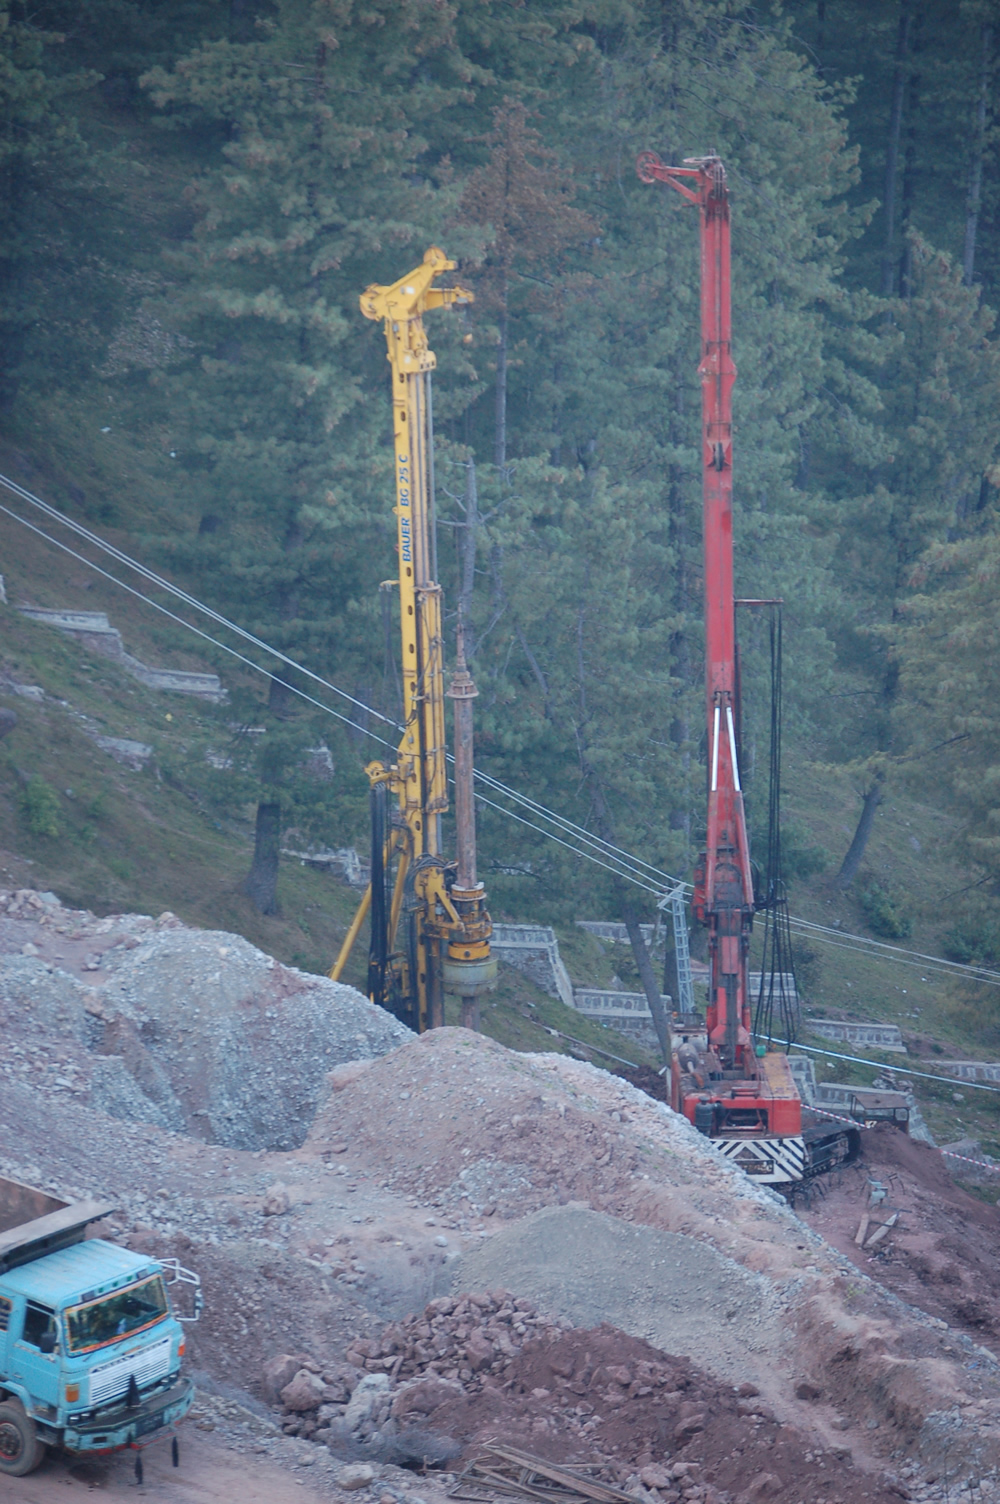 Piling using Hydraulic Rotary Machines for Slope Protection Works at Jhika Gali, Murree